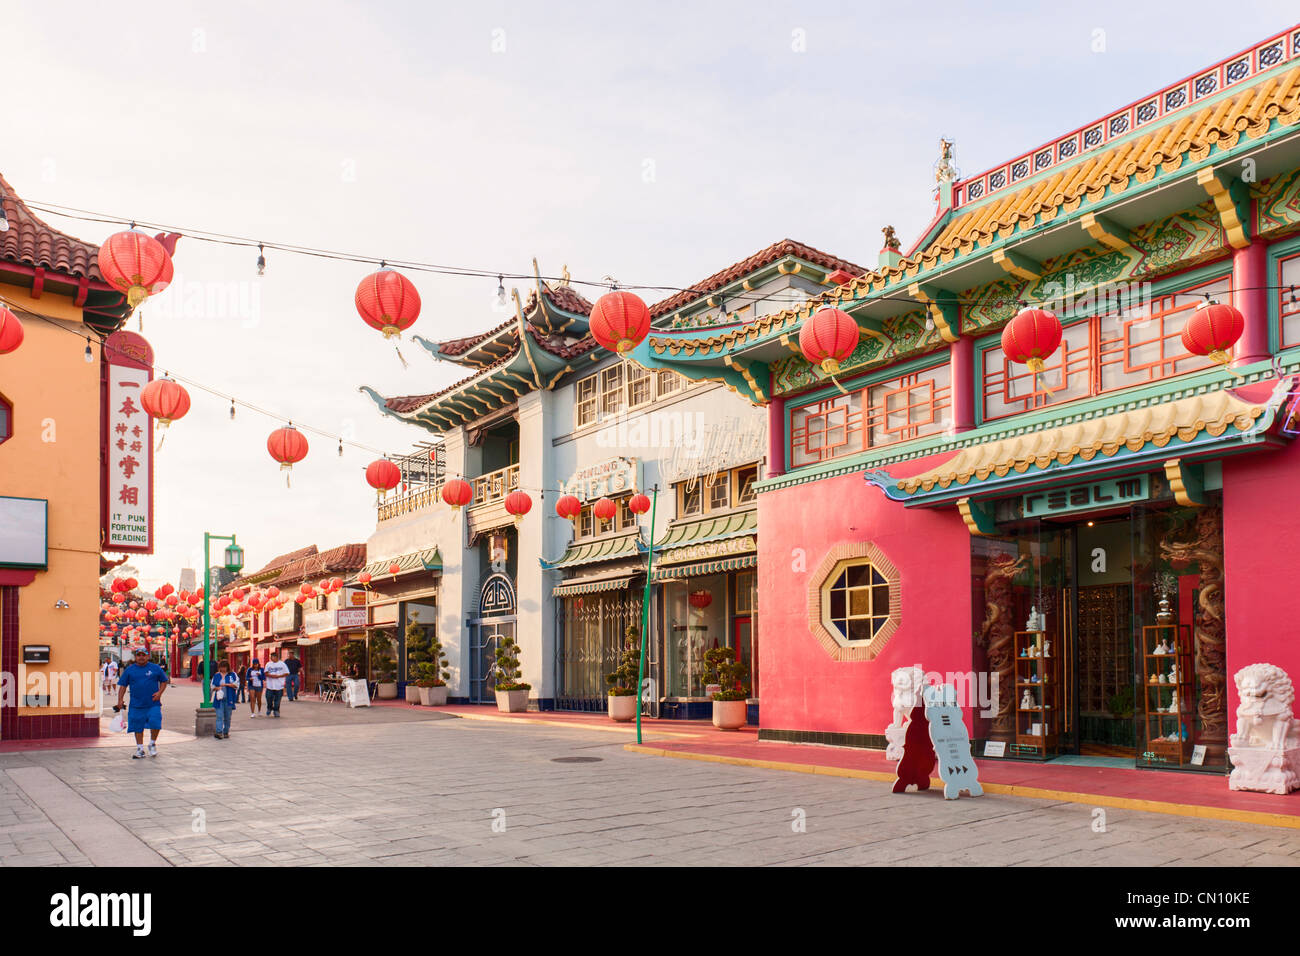 old chinatown central plaza stock photos old chinatown. Black Bedroom Furniture Sets. Home Design Ideas